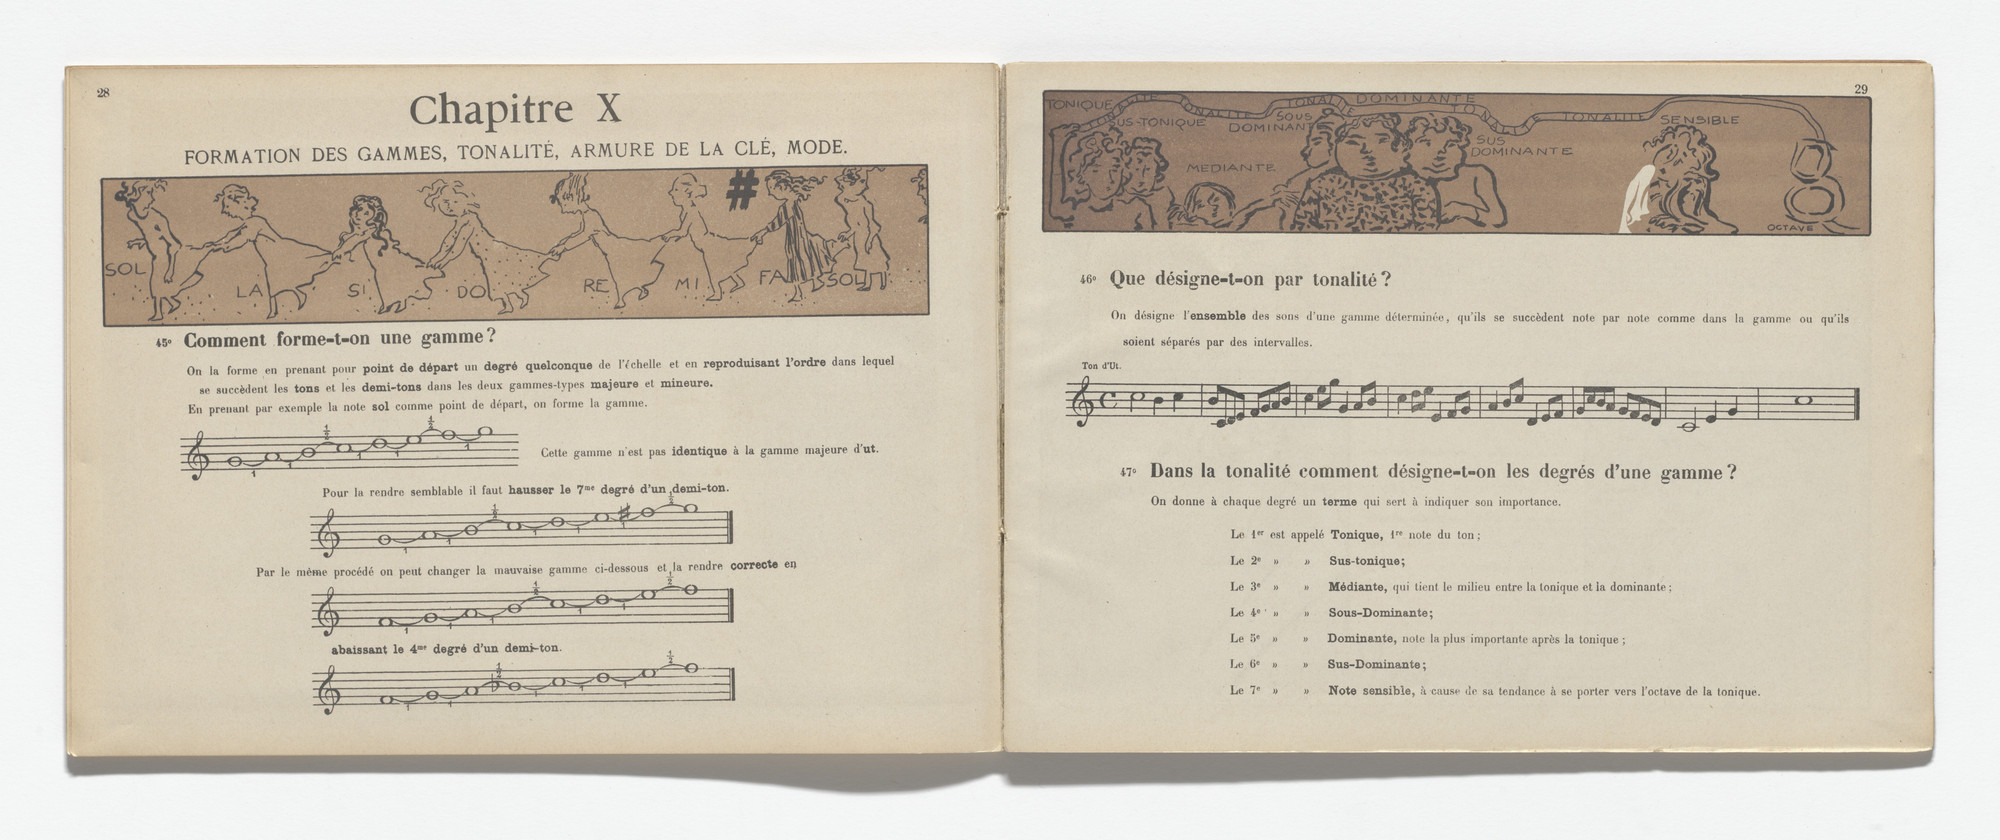 Pierre Bonnard. In-text plate (page 28) from Petit solfège illustré (Little Illustrated Solfège). 1893 (reproduced drawings executed 1891–93)